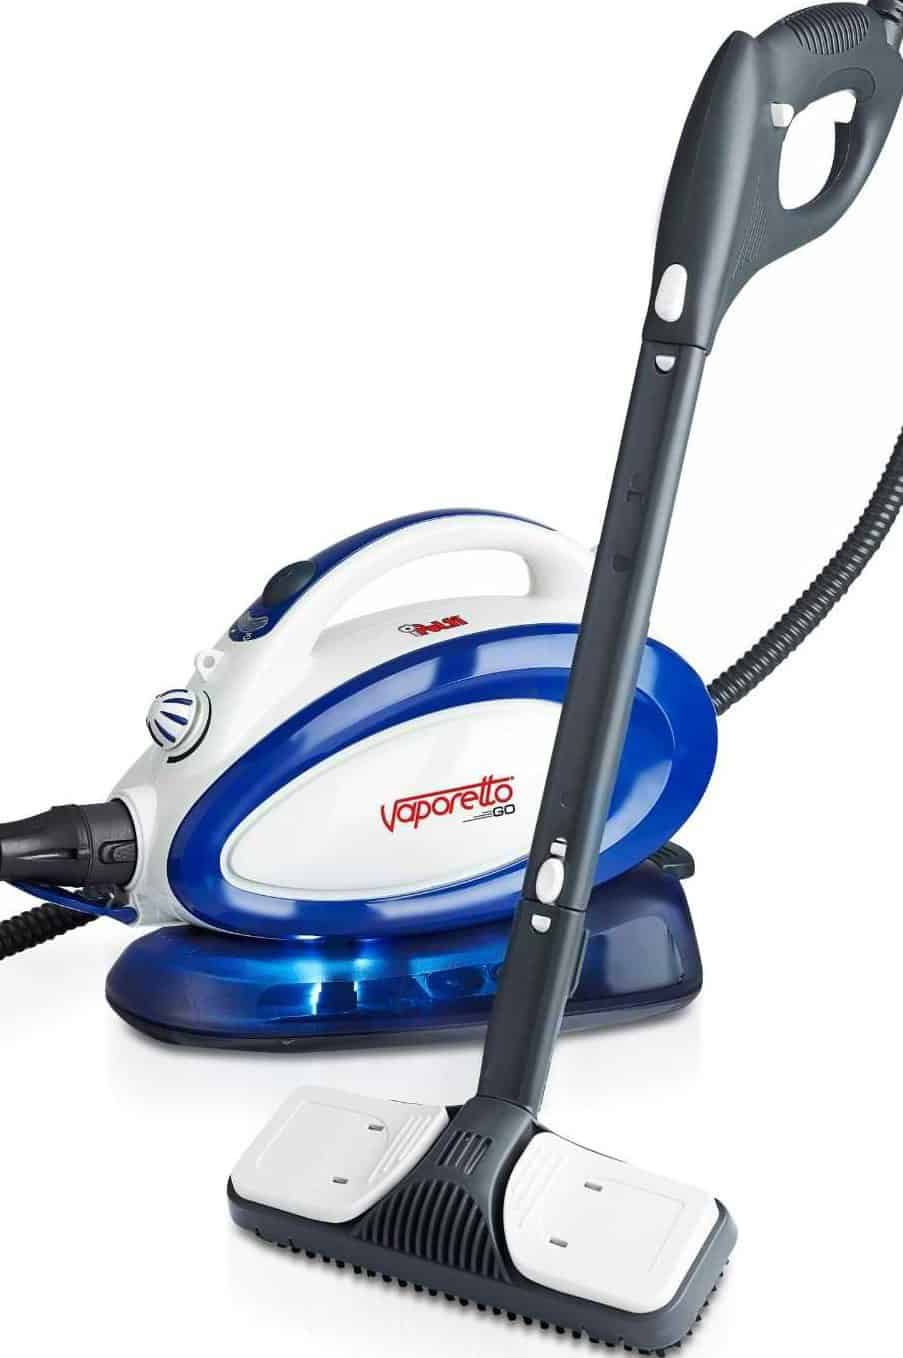 Polti Vaporetto Go Handy Portable Steam Mop